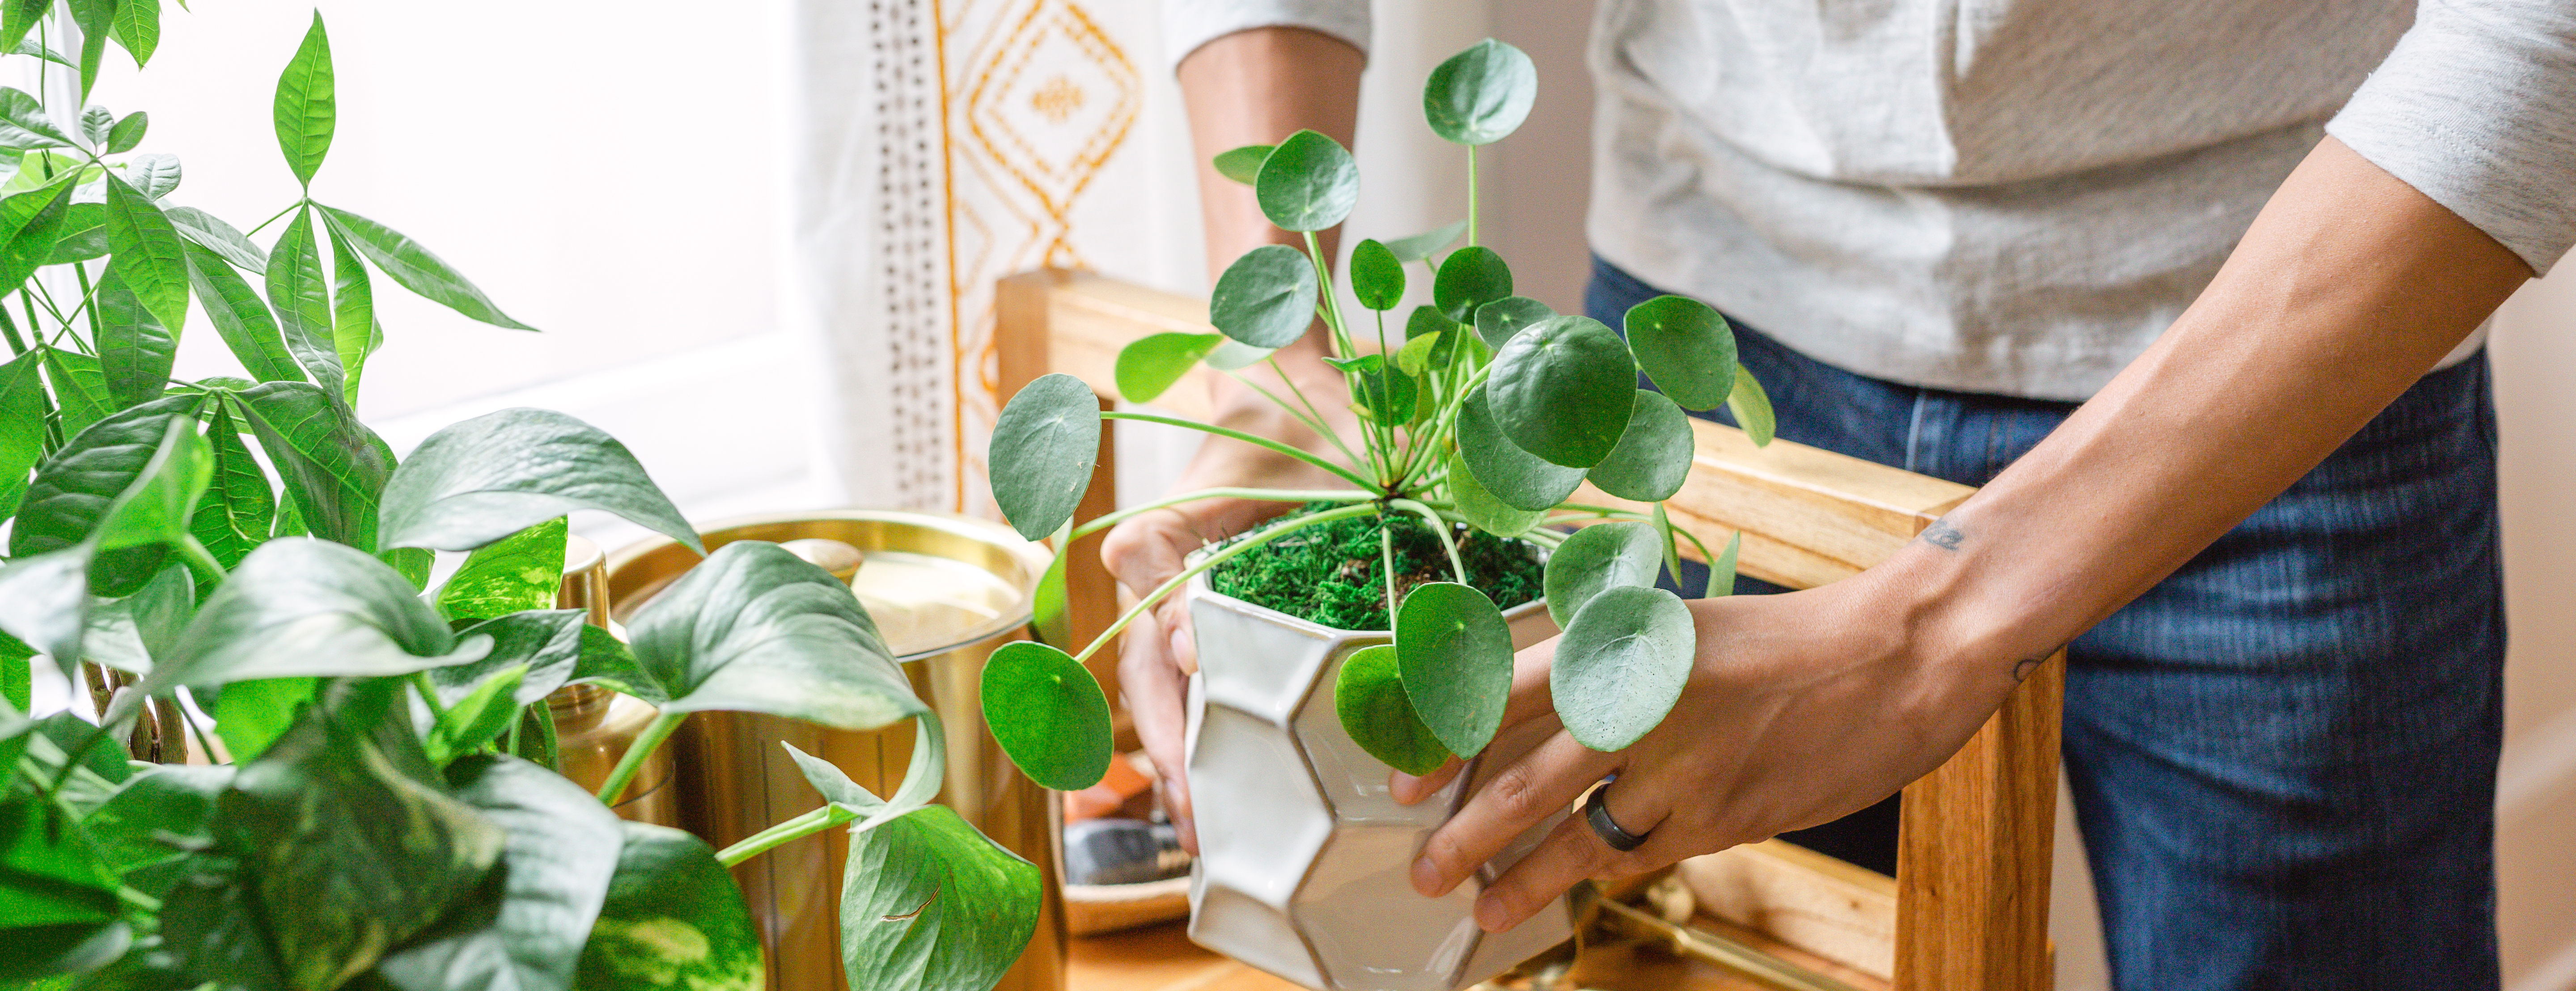 Pilea plant and pothos plants on table.